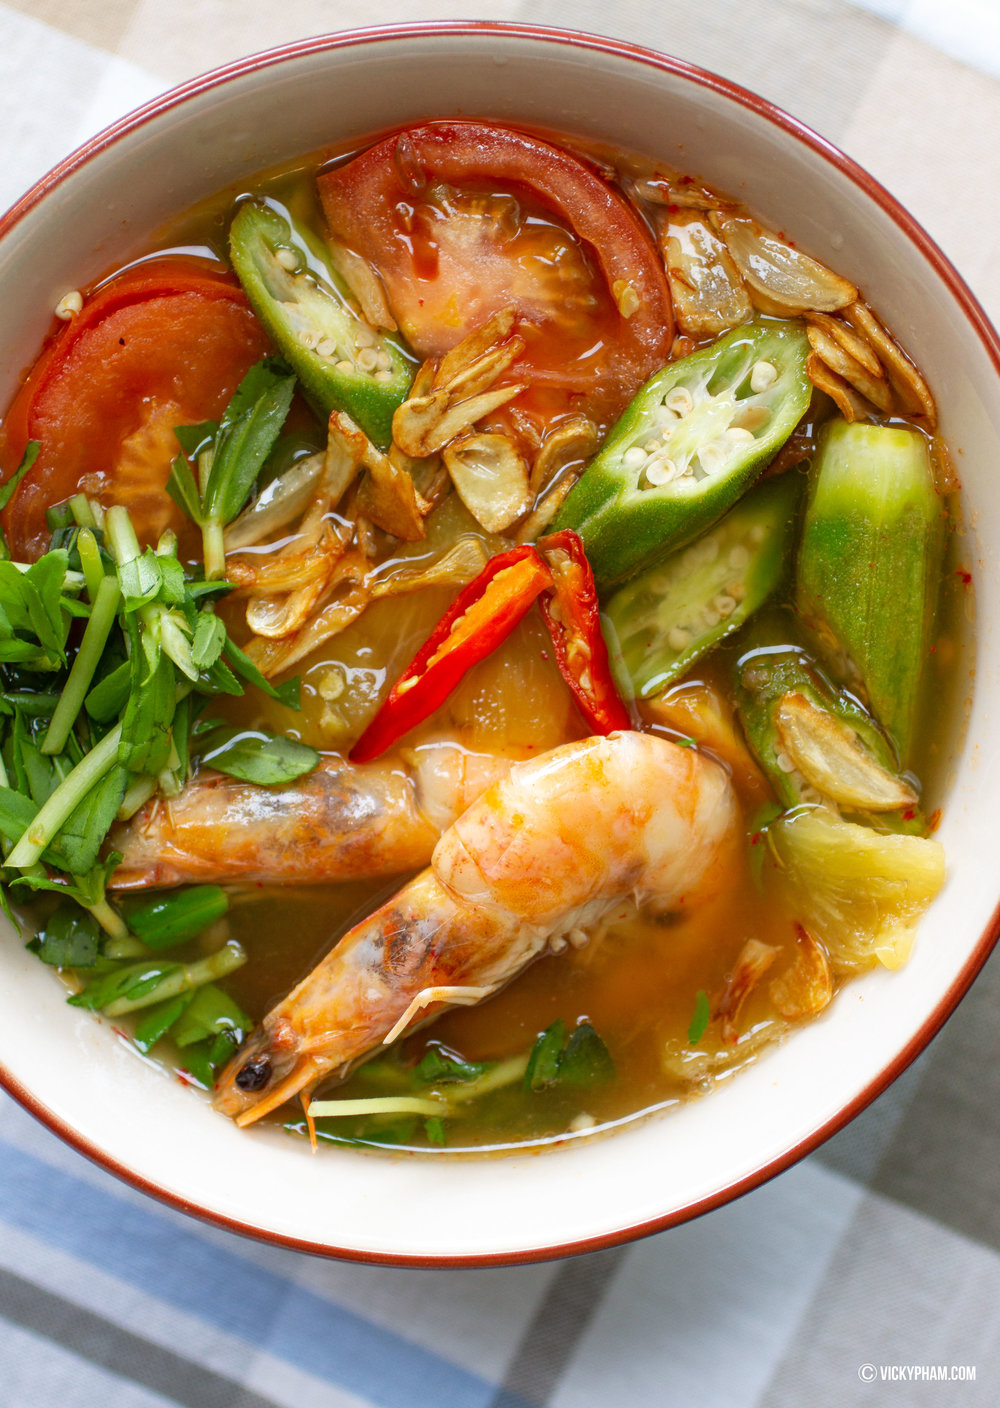 Vietnamese Sweet & Sour Shrimp Soup with Pineapple (Canh Chua Tom Nau Thom)